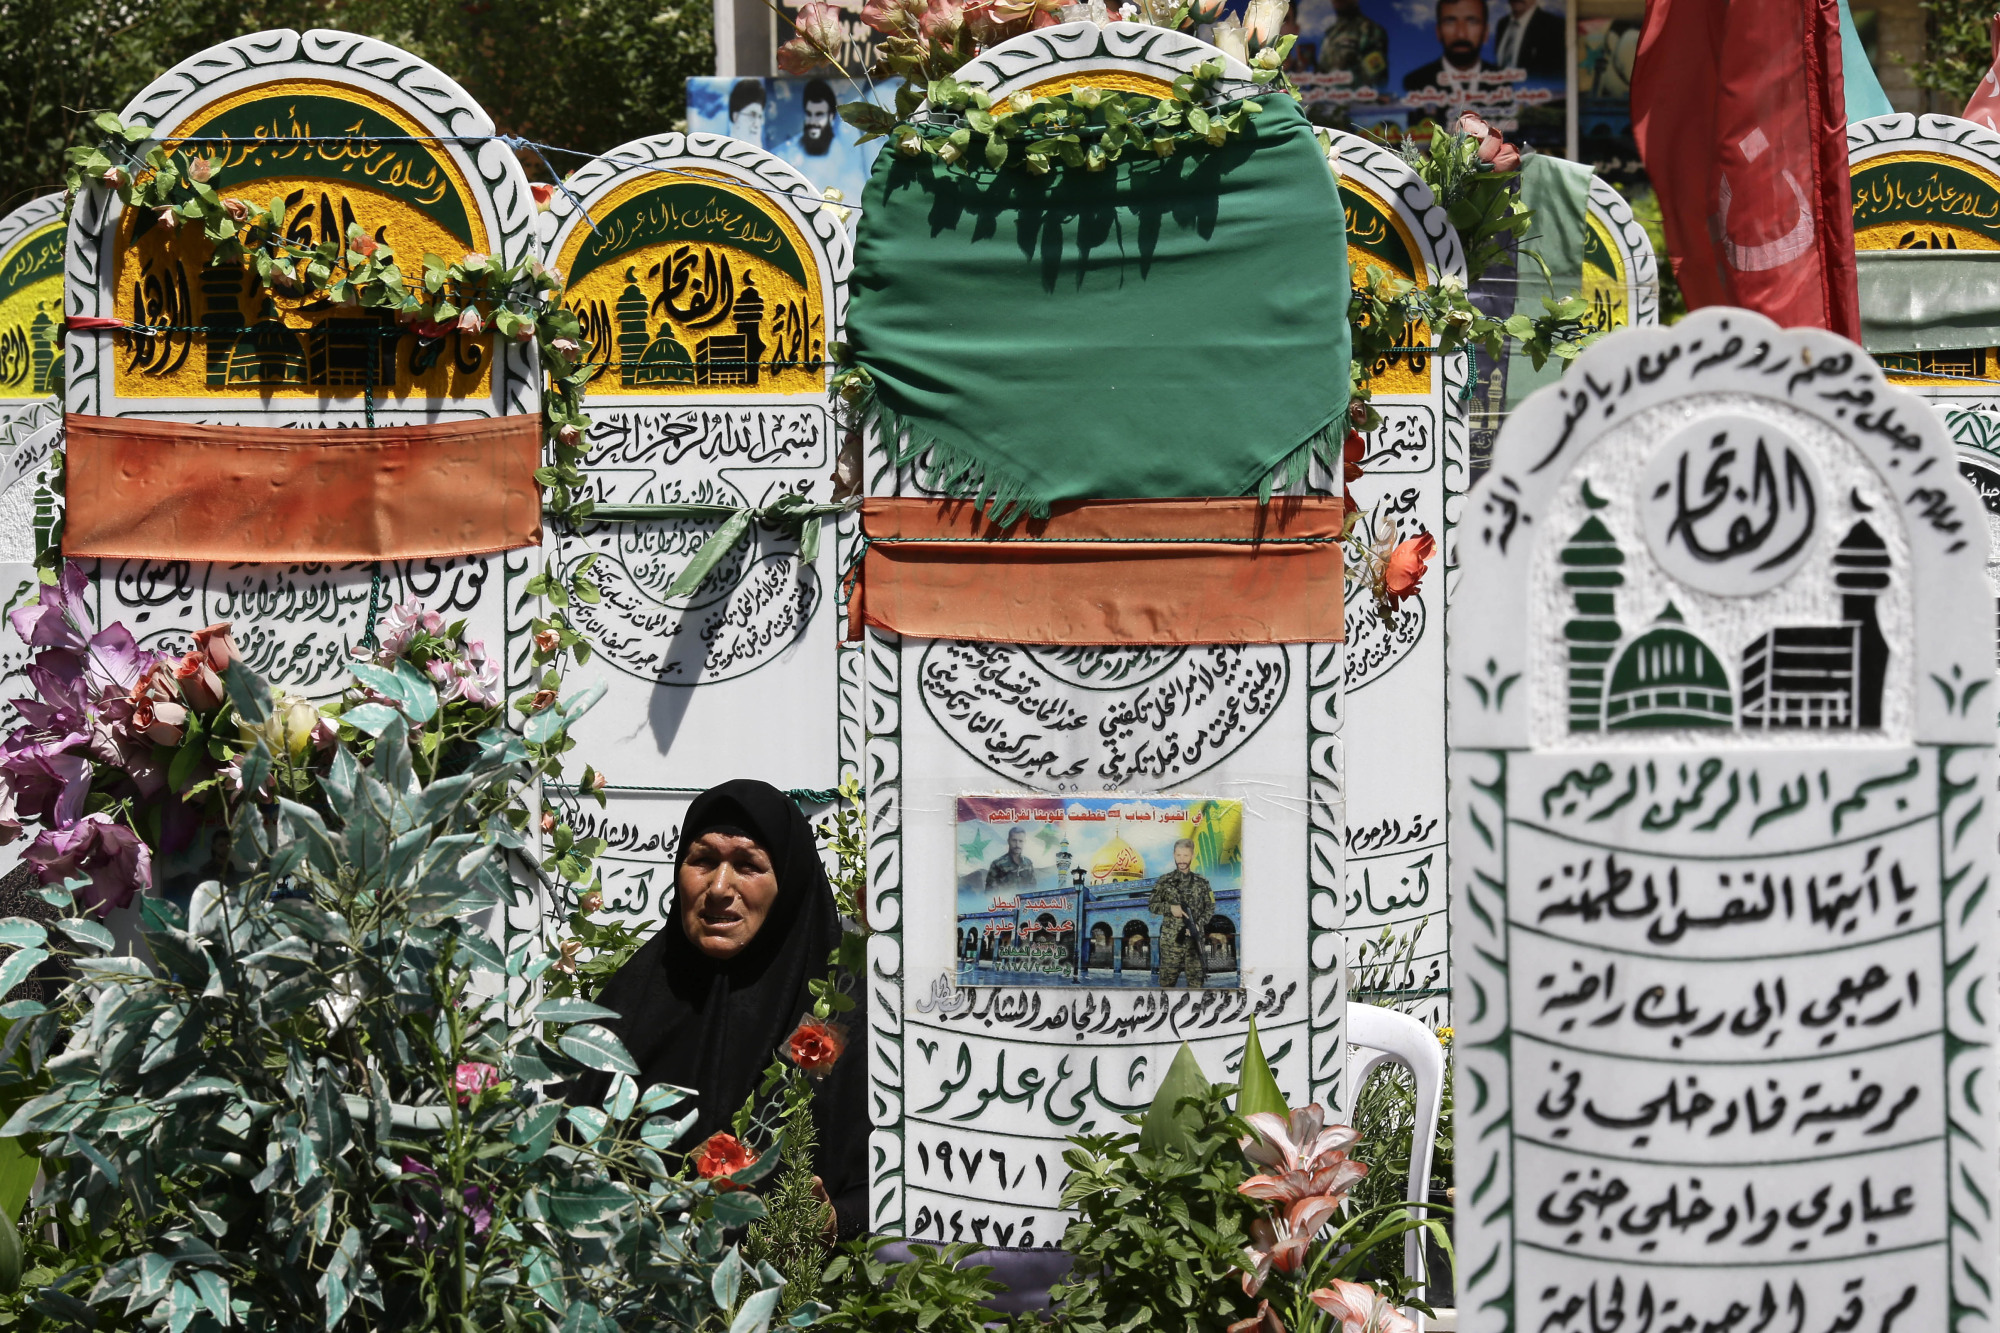 A prays at the grave of her son, who died fighting Syrian insurgents, in the Sayyidah Zaynab suburb of Damascus on Friday. Near a shrine, the new cemetery holds the remains of hundreds of Shiite fighters, testimony to the high cost of Iran's military intervention in Syria. | AP